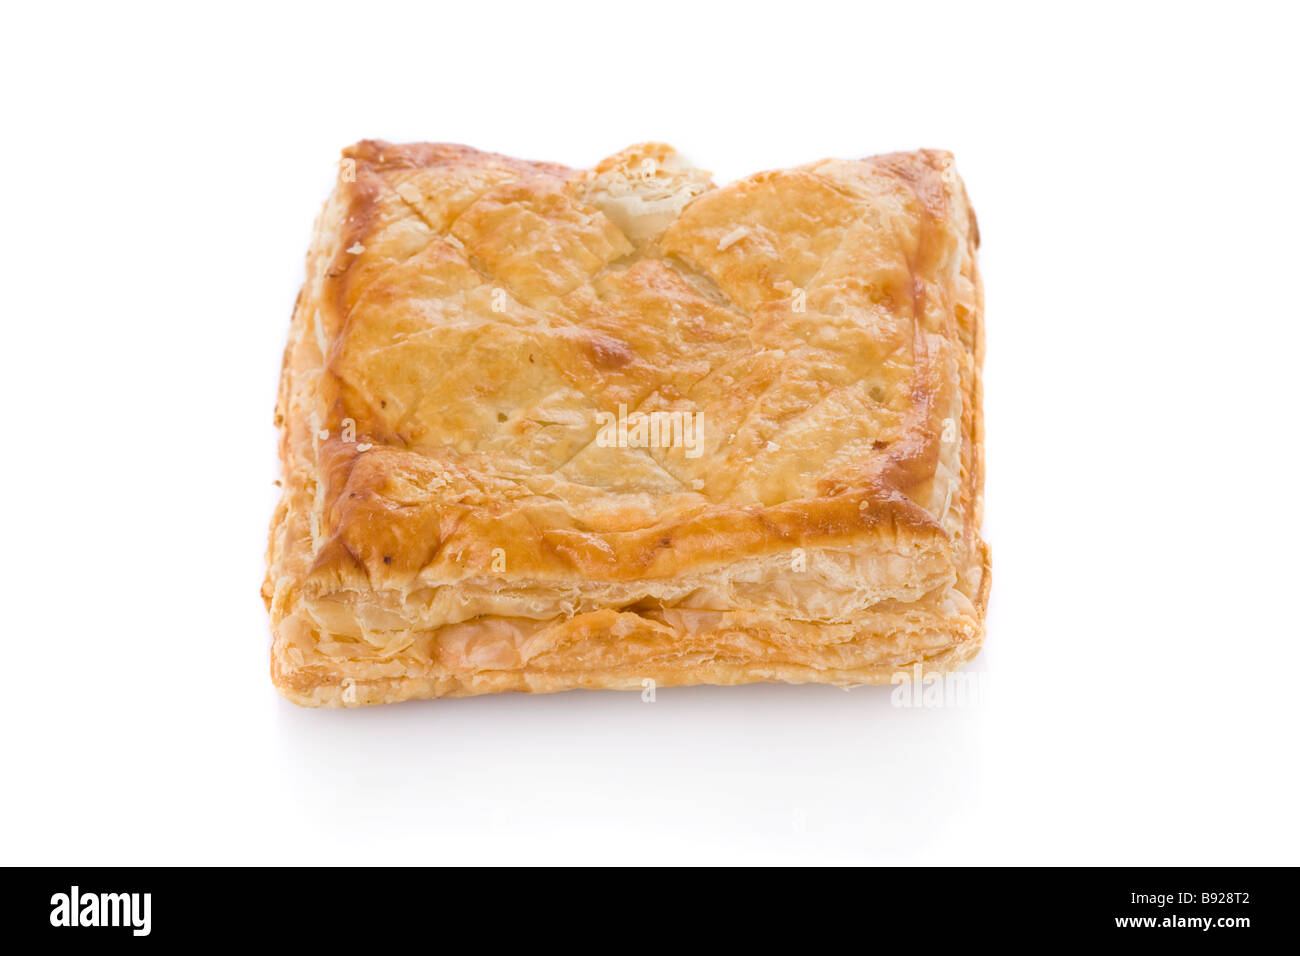 Puff pastry (sweet or salted)  isolated on white background - Stock Image